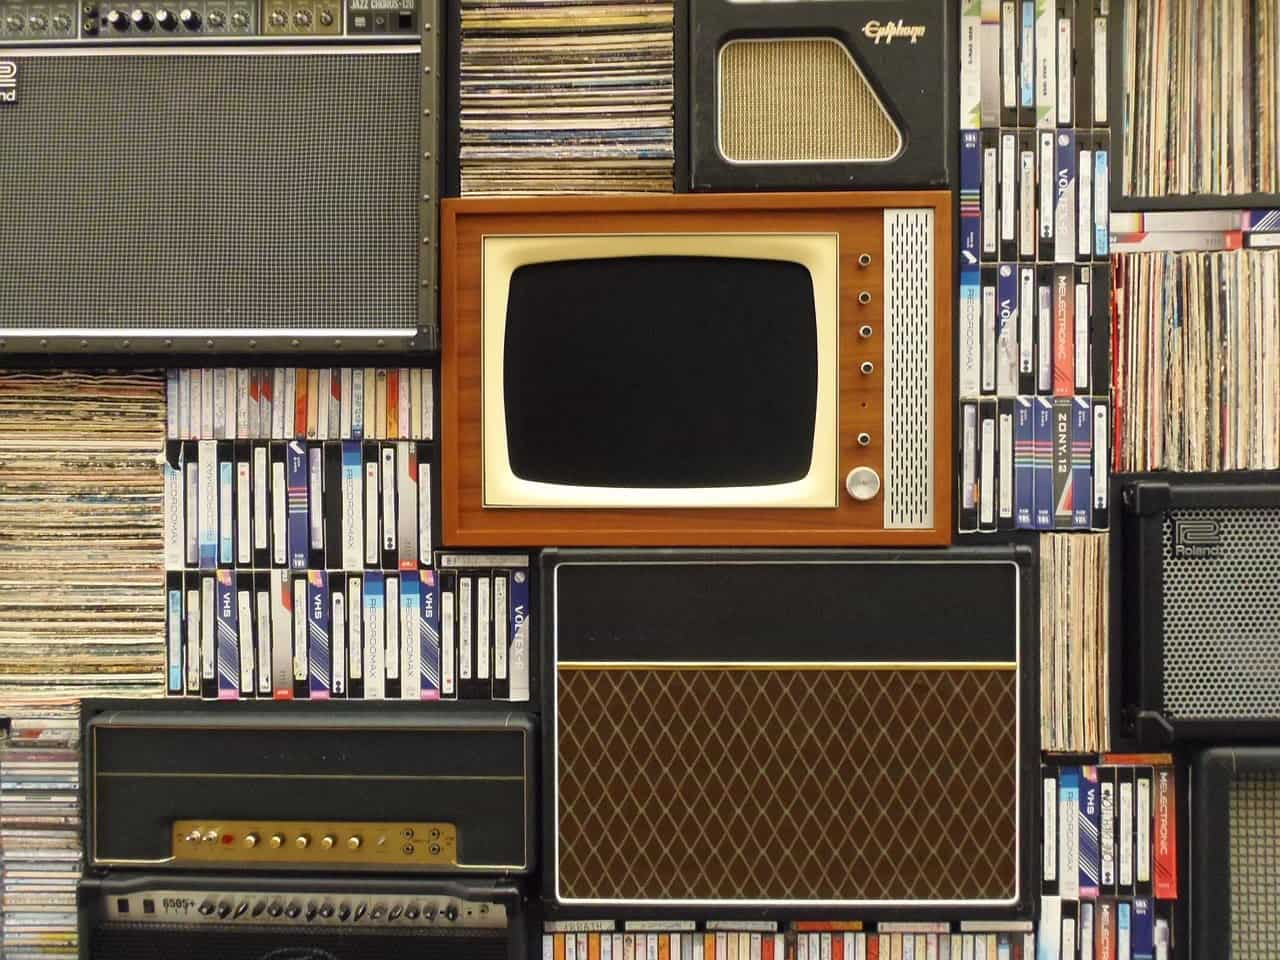 Expert Decorating Tips to Give Your Home a Vintage Look. TV and journals at the shelving